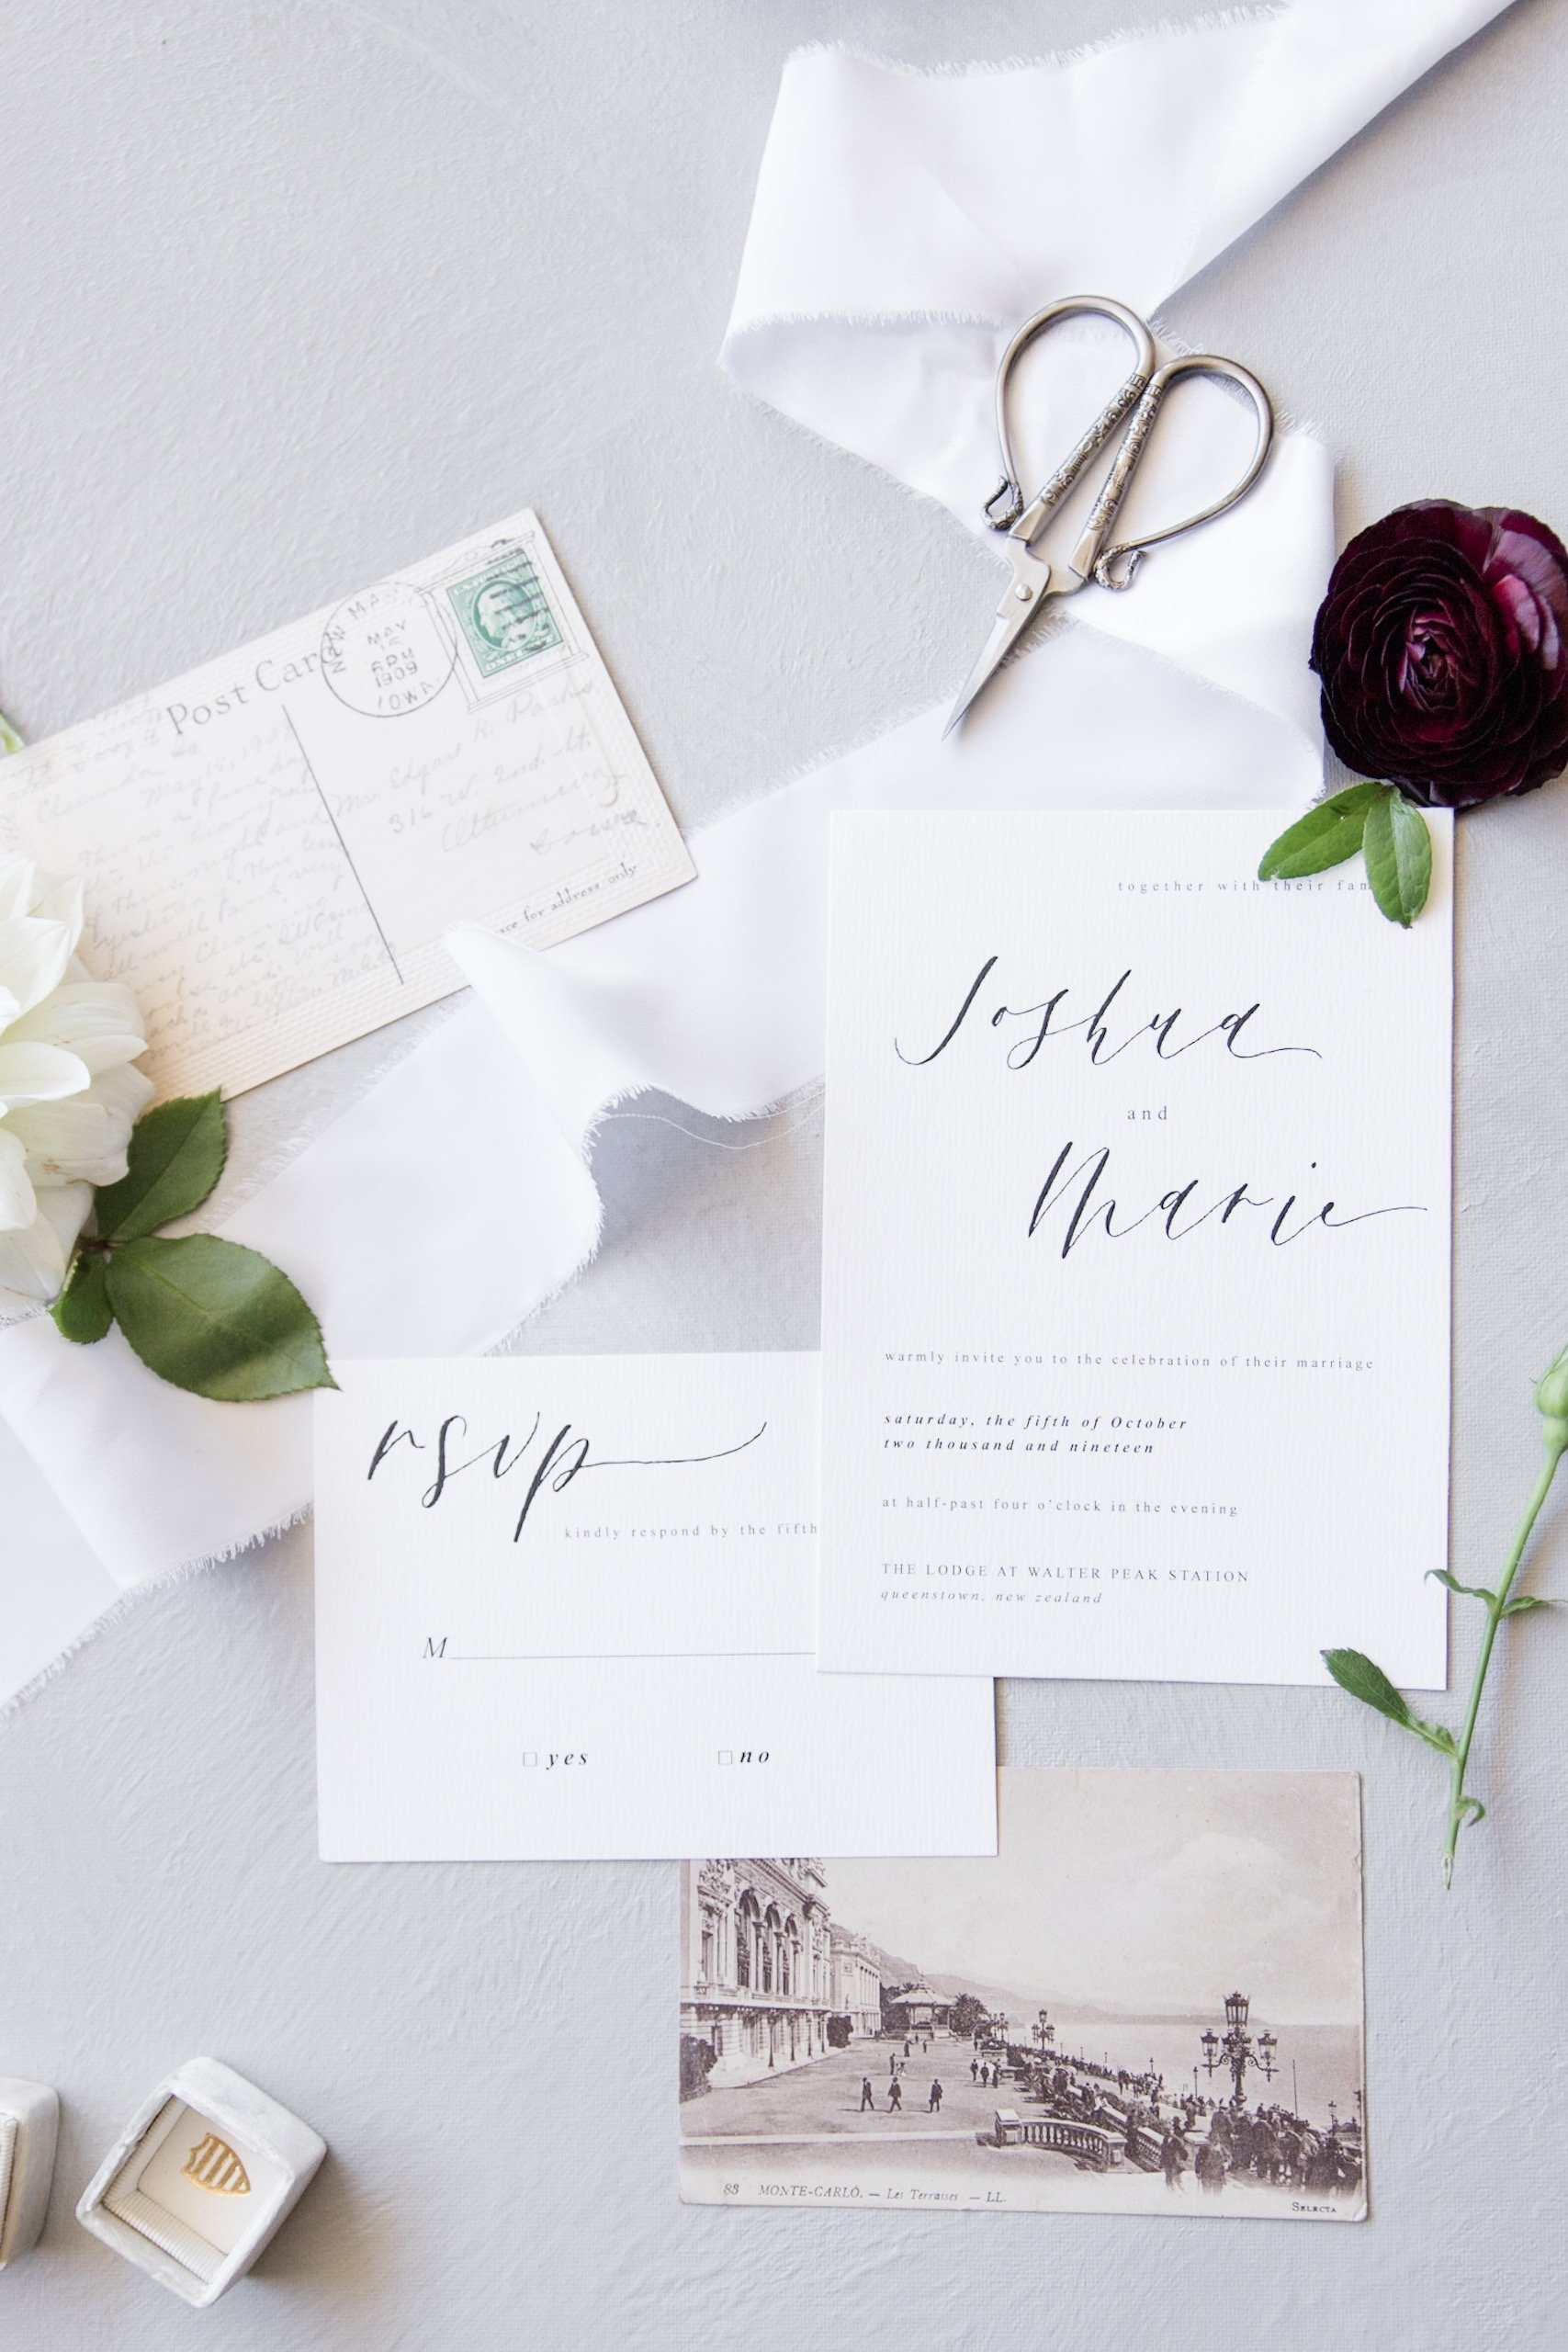 Collection of invitations with florals and ribbon